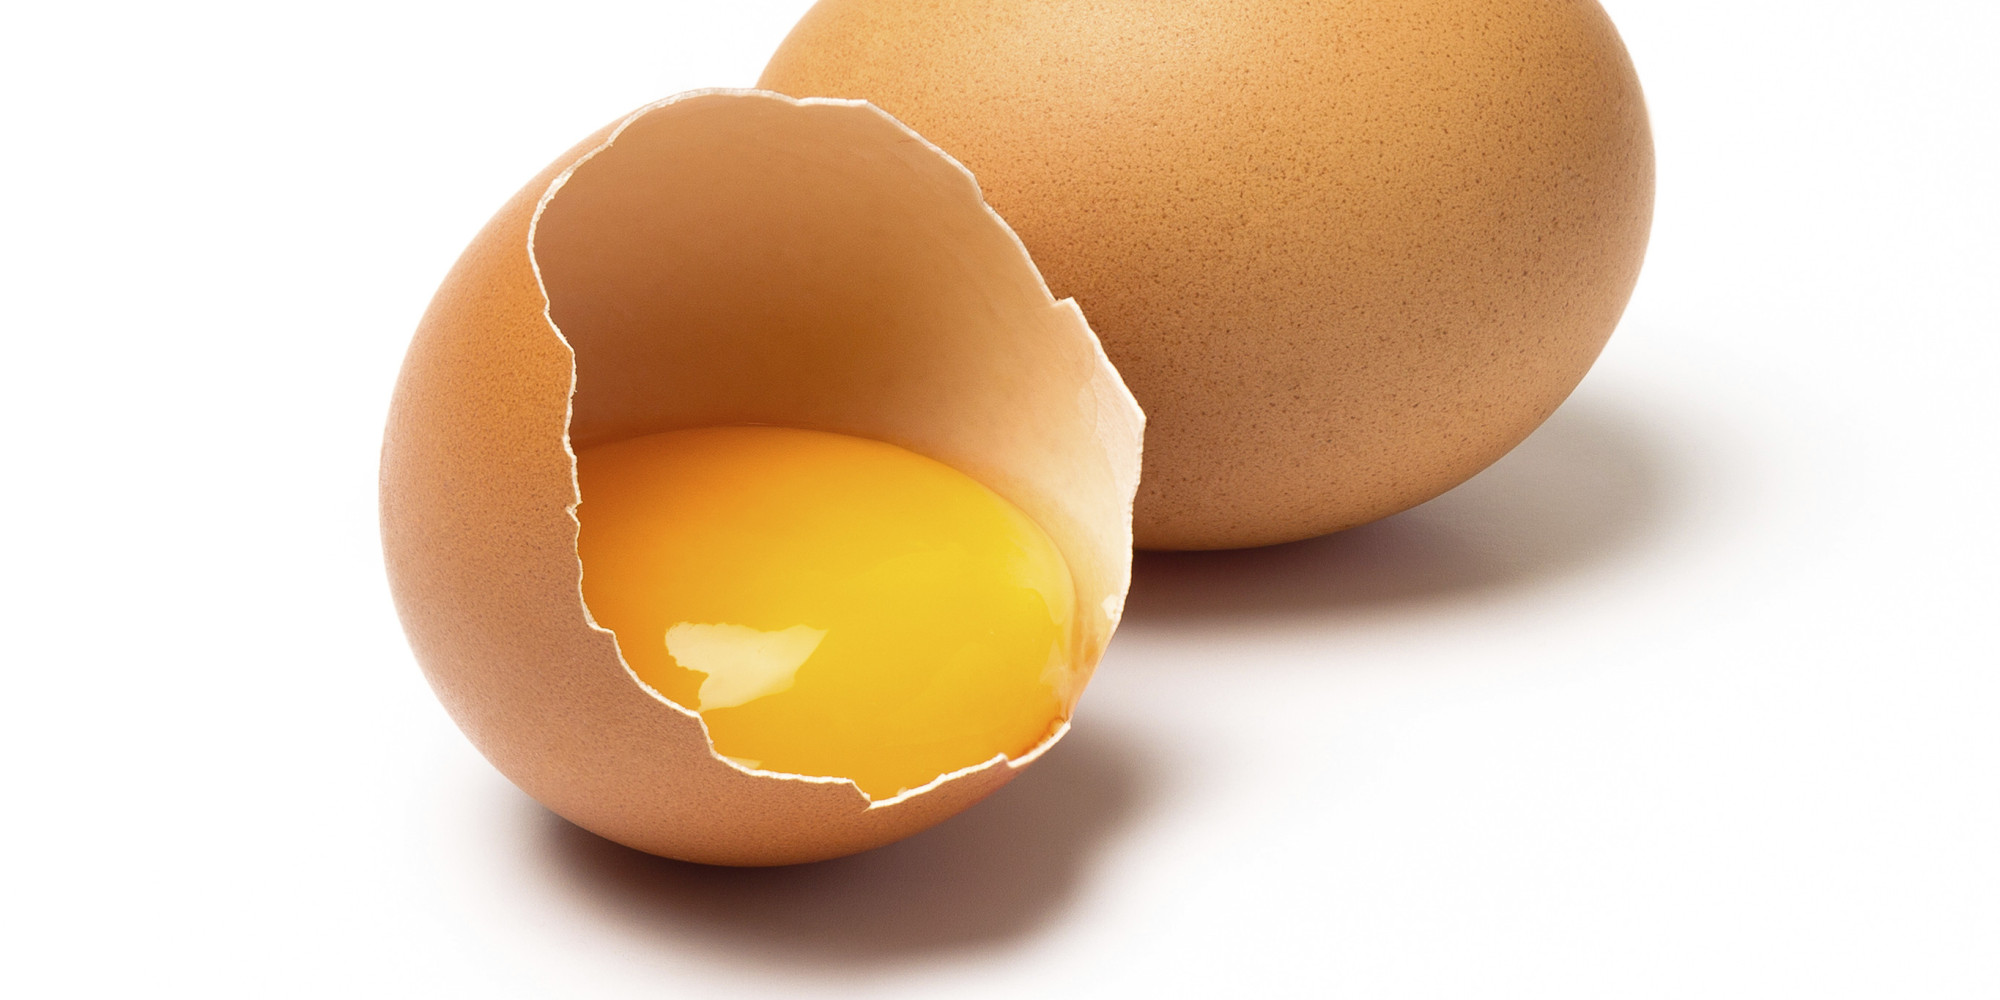 pow the broken eggs Free essay: pow problem statement a a farmer is going to sell her eggs at the market when along the way she hits a pot hole causing all of her eggs to spill.